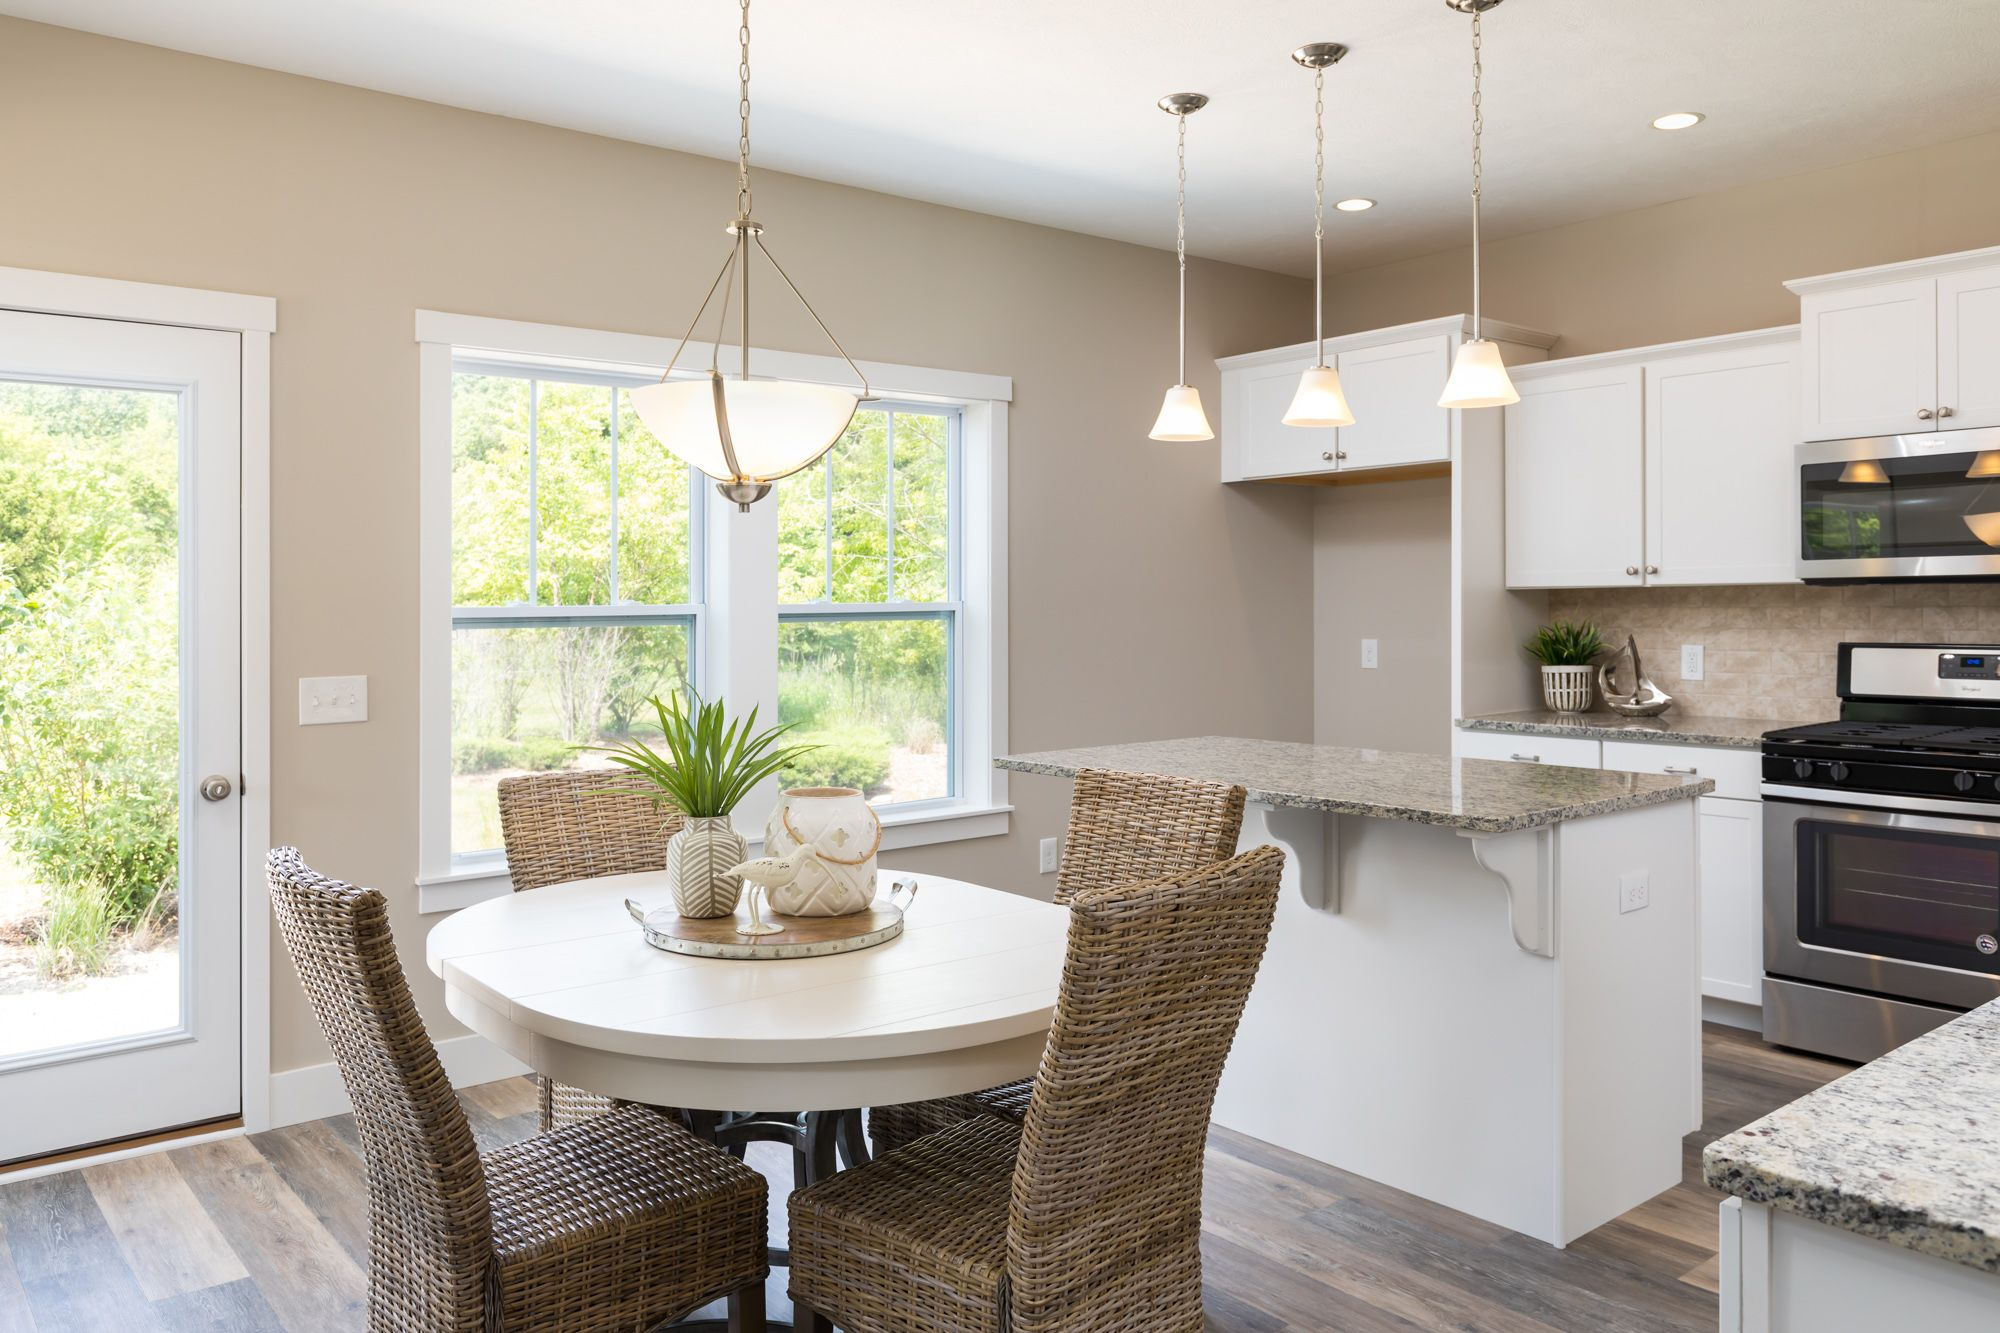 Kitchen featured in the Elements 2100 By Allen Edwin Homes in South Bend, IN